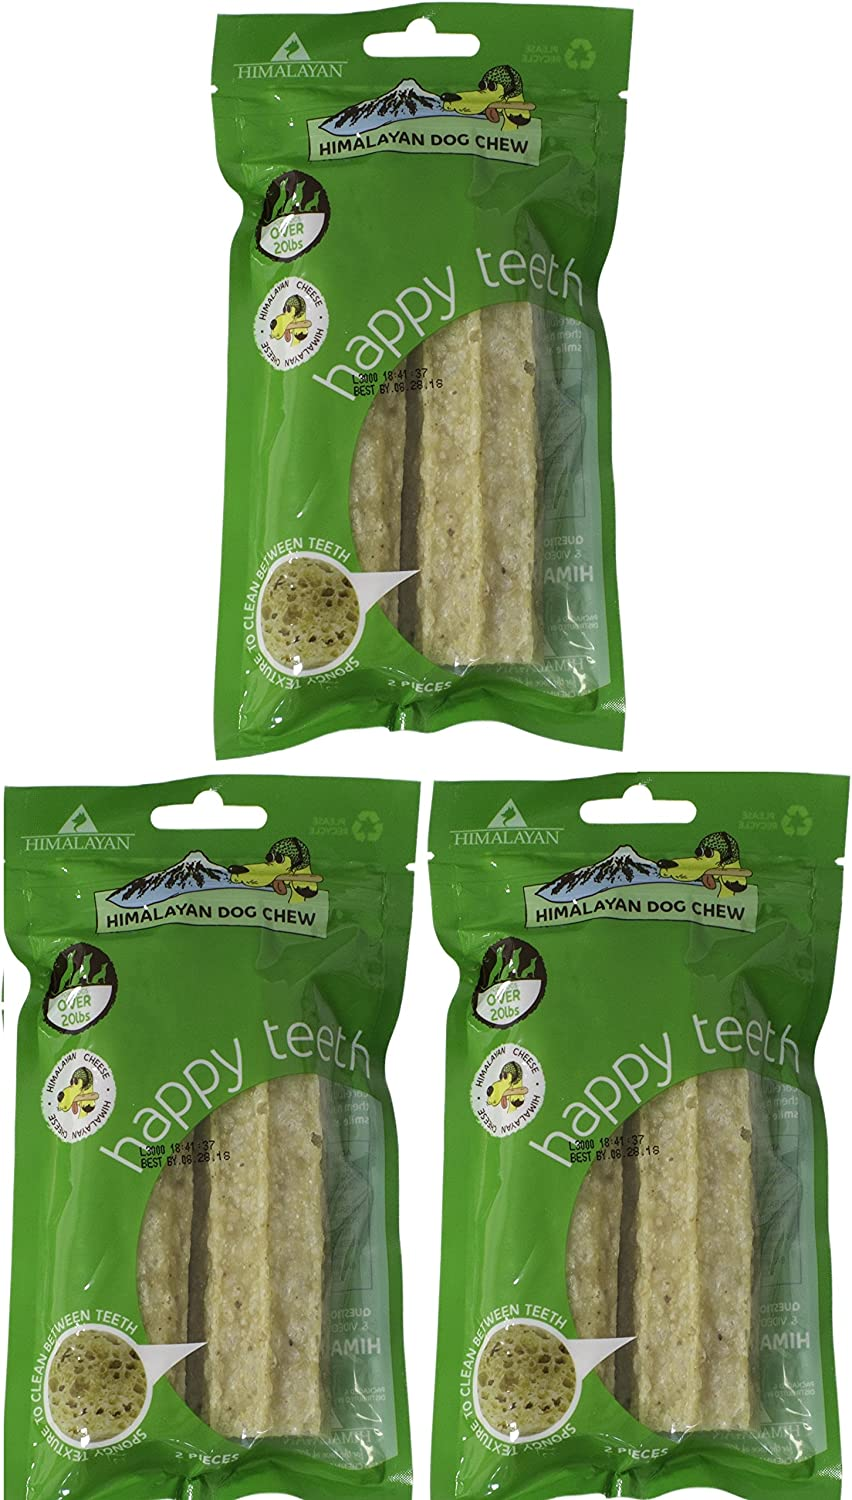 Himalayan Happy Teeth Dog Chew, Cheese, Large, Pack of 3